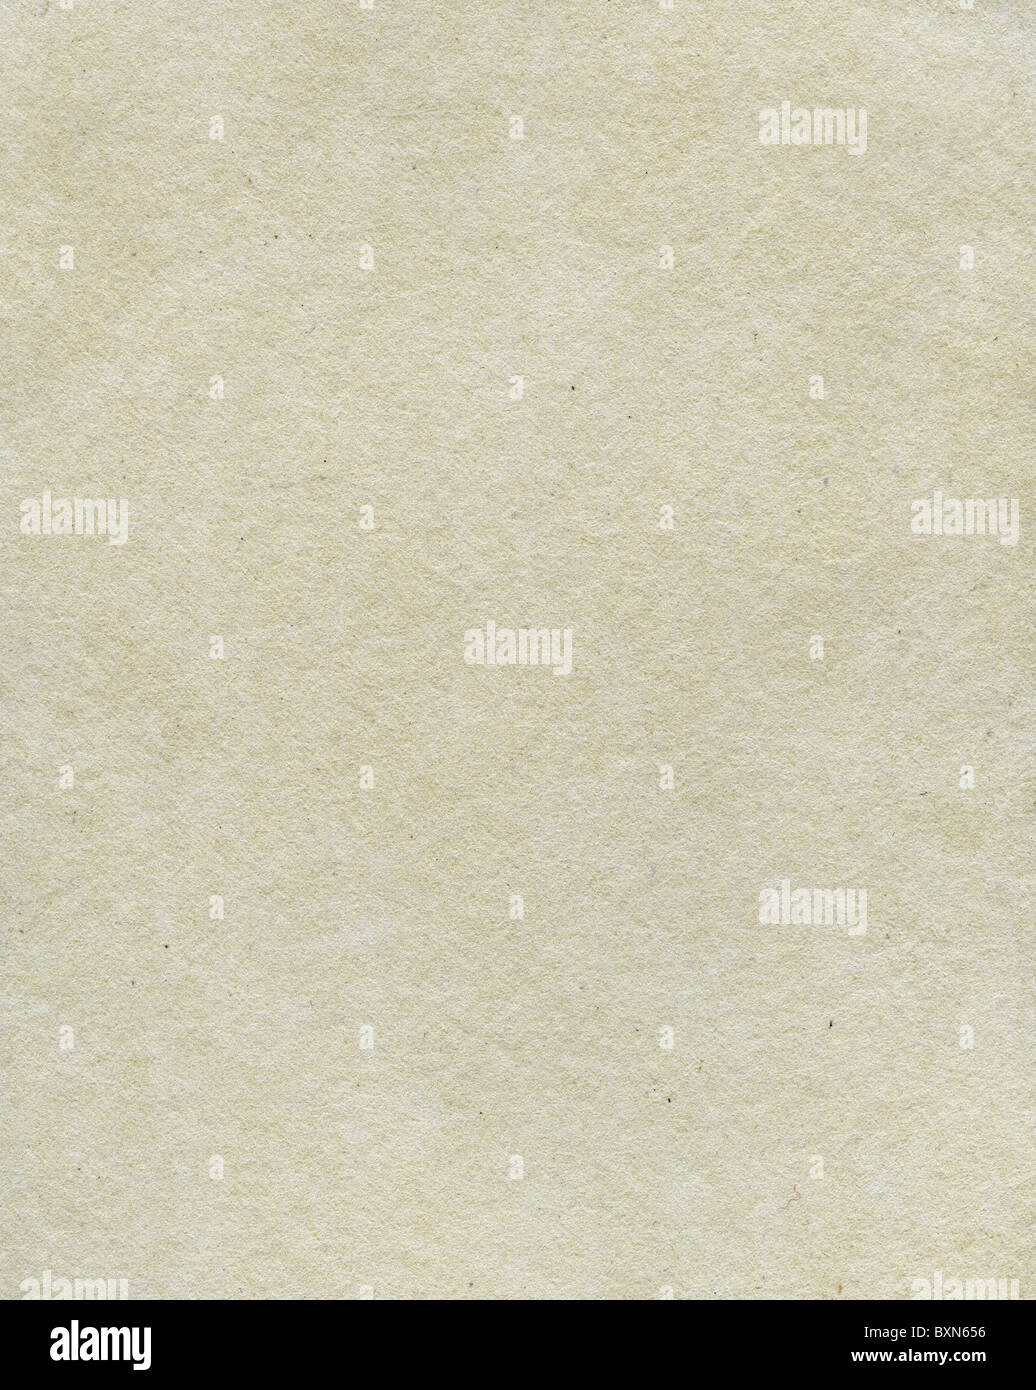 Textured grainy rough recycled paper with natural fiber parts - Stock Image